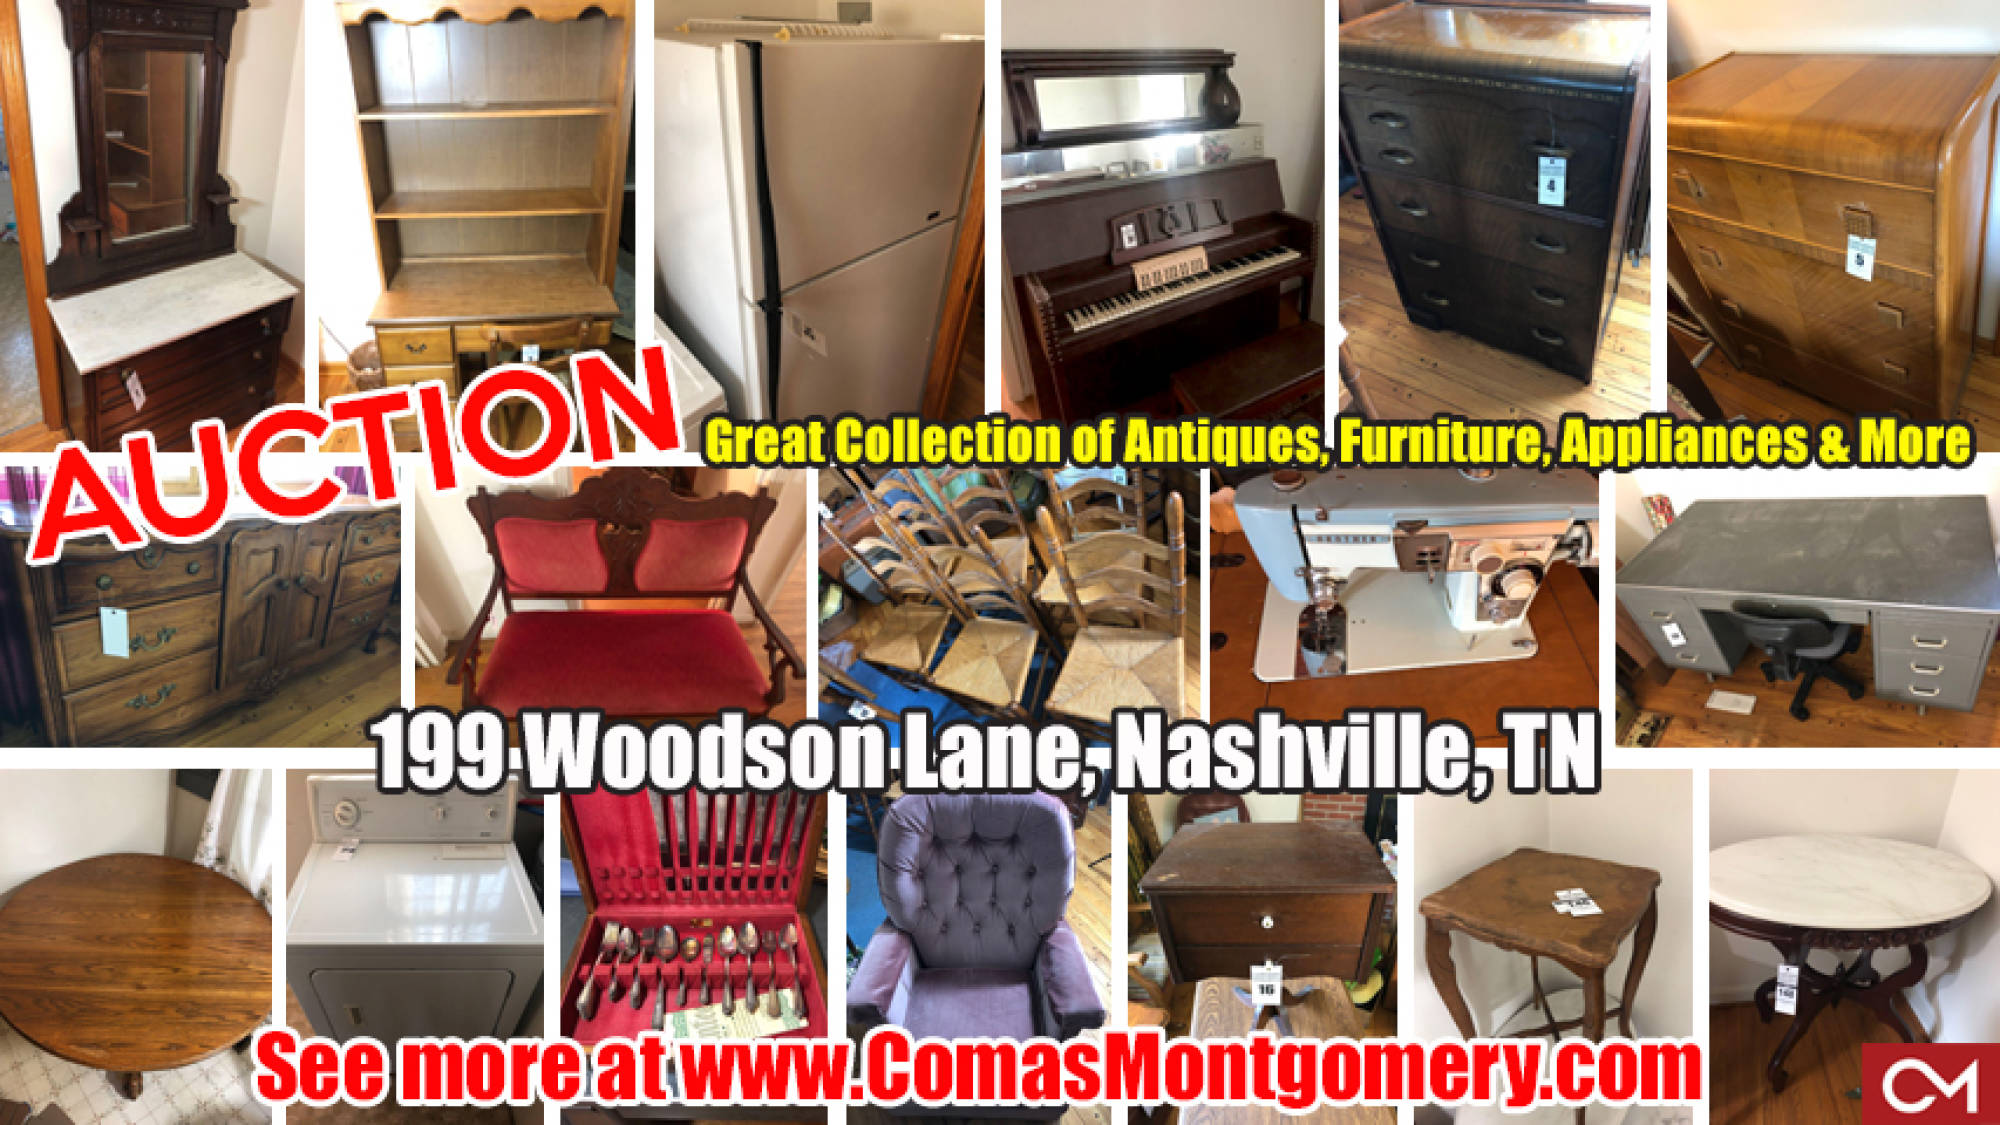 Estate, Sale, Auction, Furniture, Antiques, Appliances, For Sale, Sewing, Piano, Silverware, Comas, Montgomery, Table, Chairs, Tennessee, Nashville